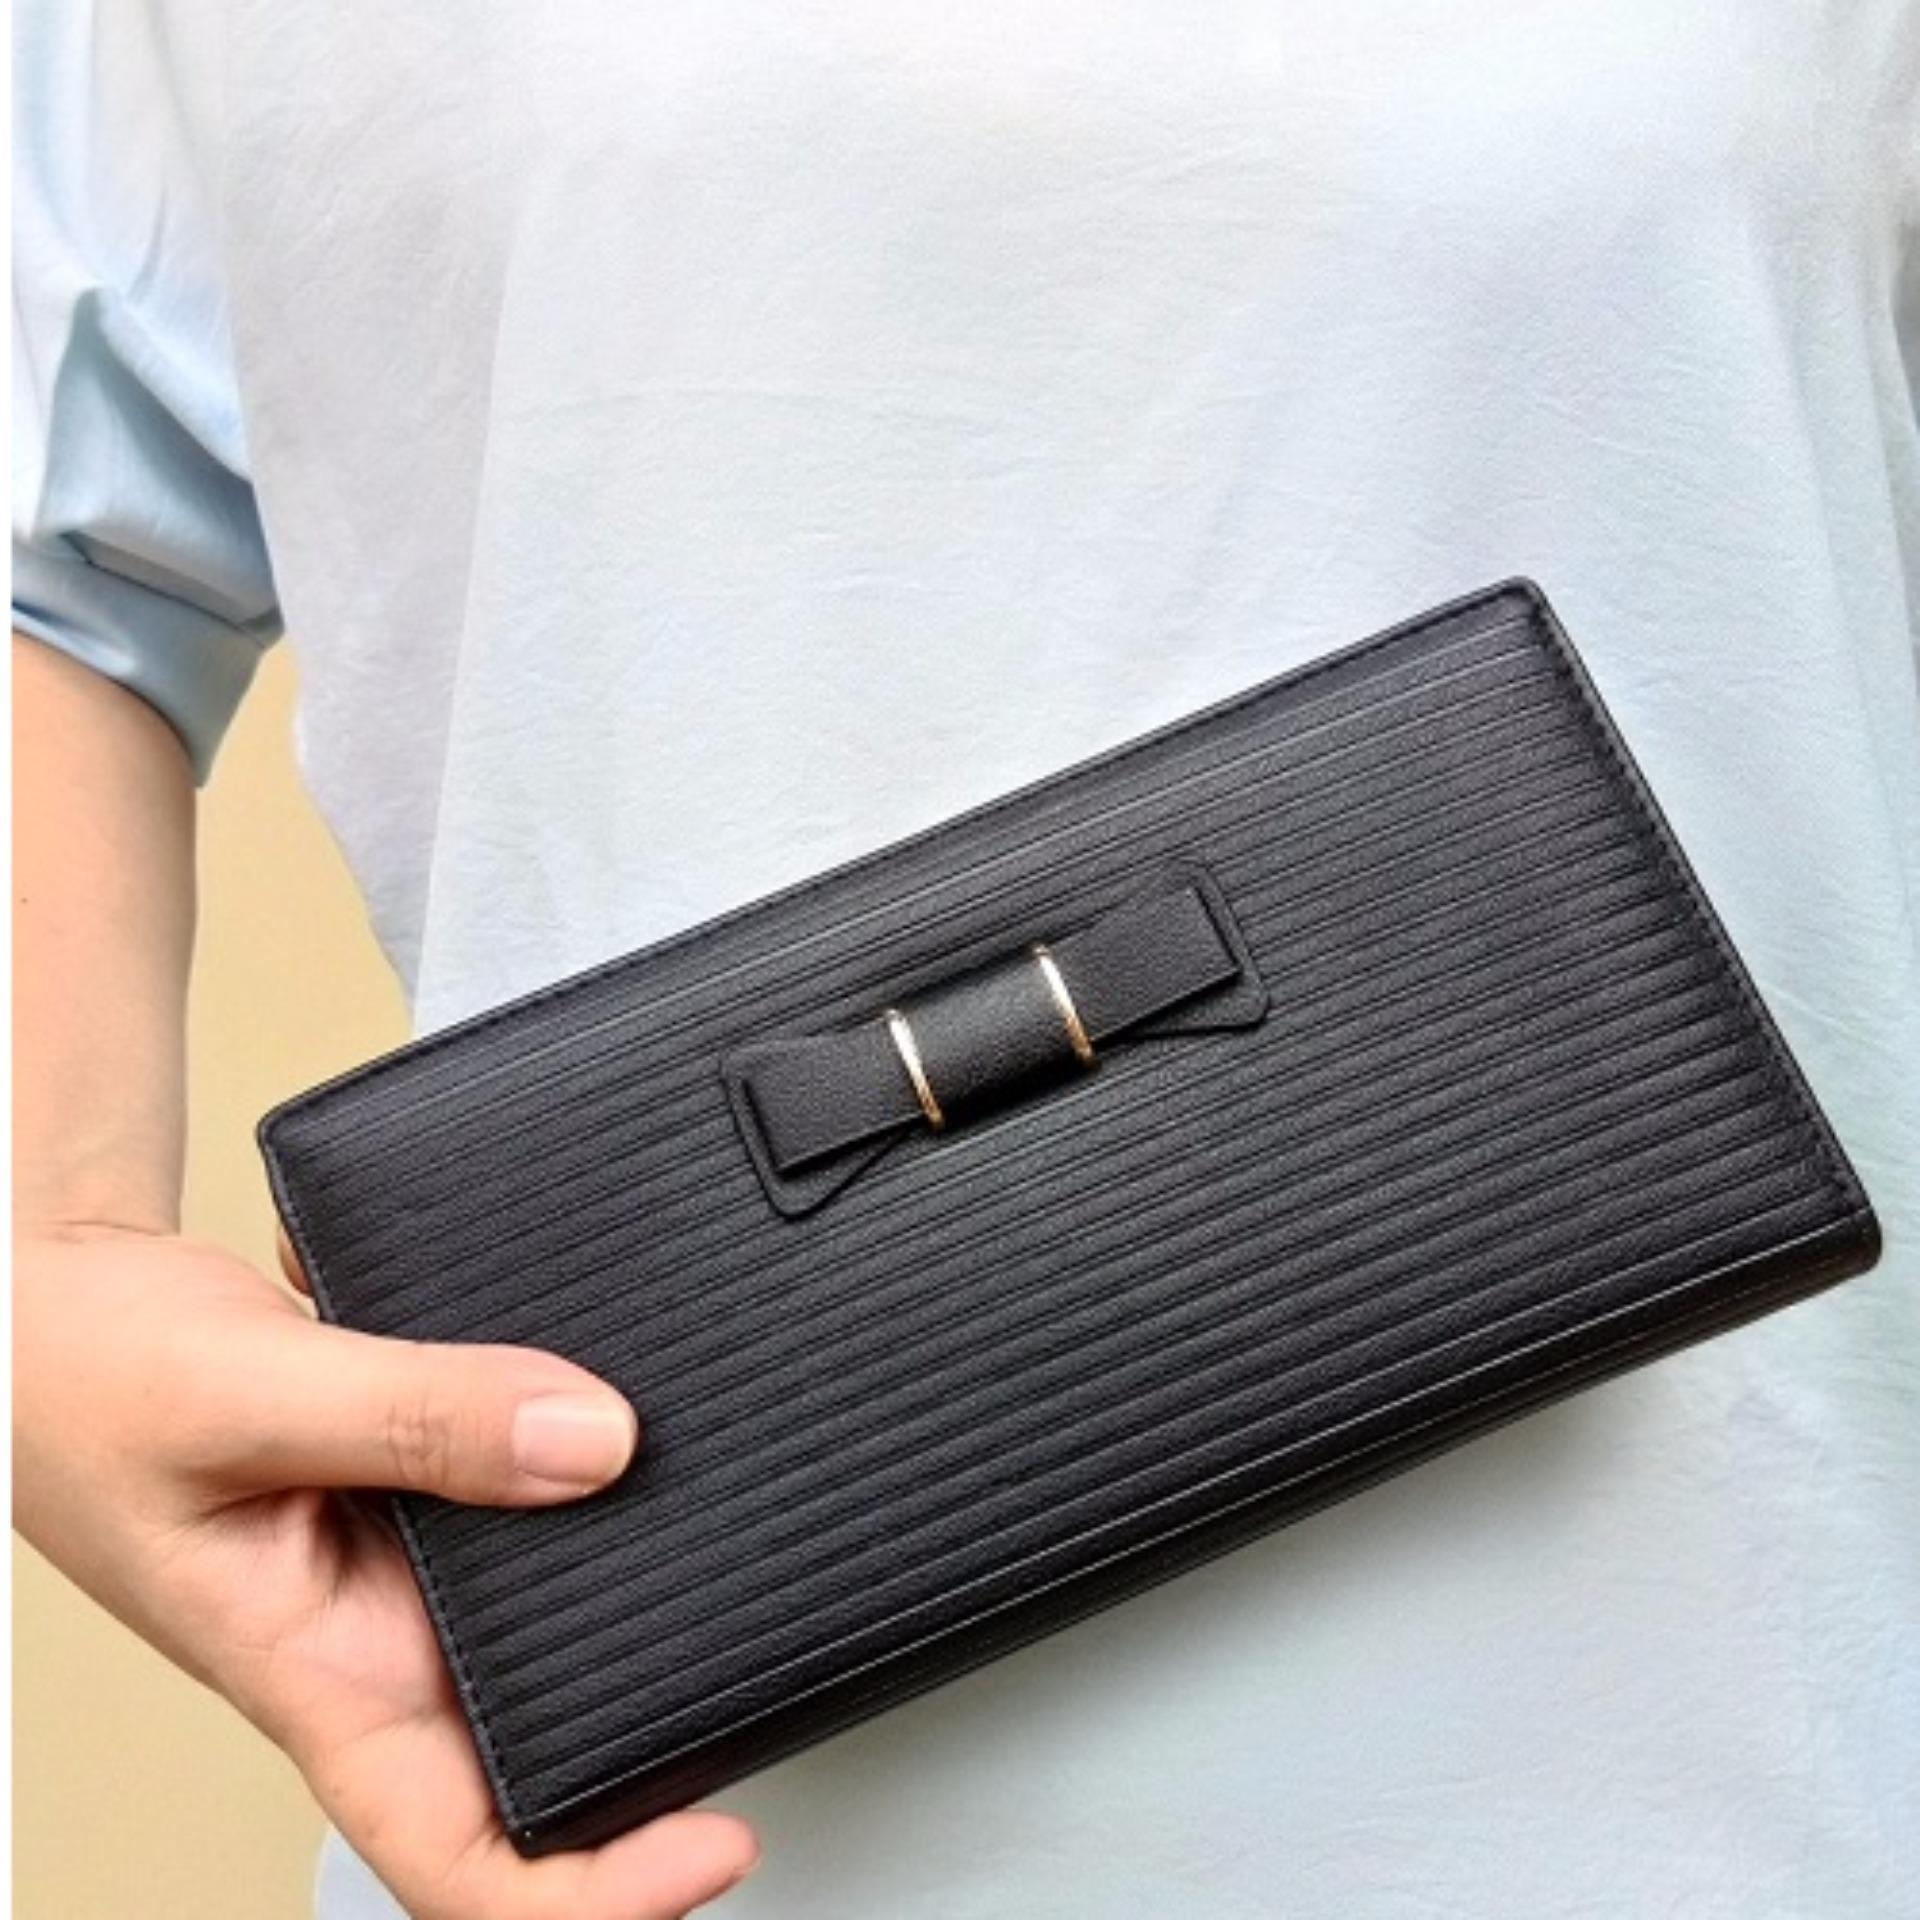 Situs Review Jcf Multifungsi Dompet Clutch Wanita Fashion Branded Pu Leather Import Alice Black Bagus Dan Mewah High Quality